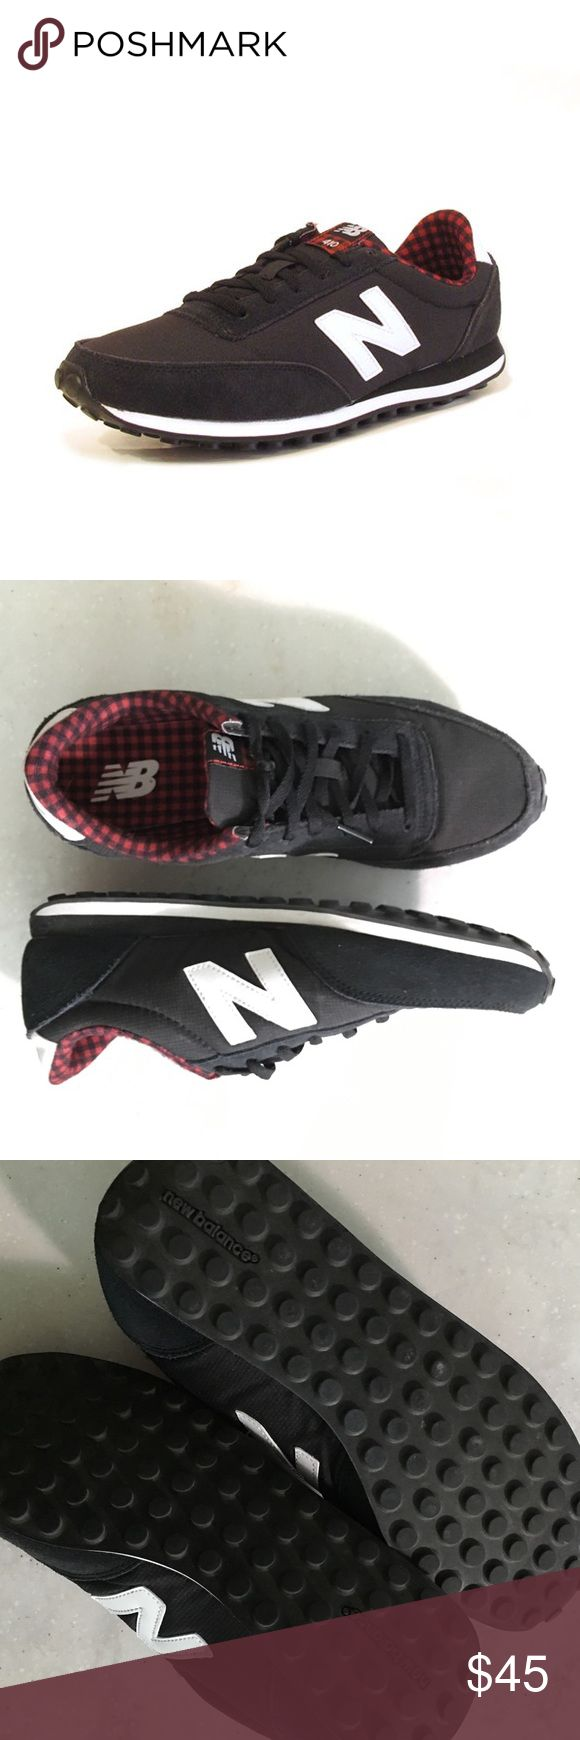 New Balance 410 Women's New Balance 410's. Black with plaid interior. Used/worn once. Still in great, almost new condition! Clean. Size is 10 but runs small (not like other NB fit) id say fits a women's size 8-9.  Please feel free to ask me any questions or make an offer! Shoes Sneakers